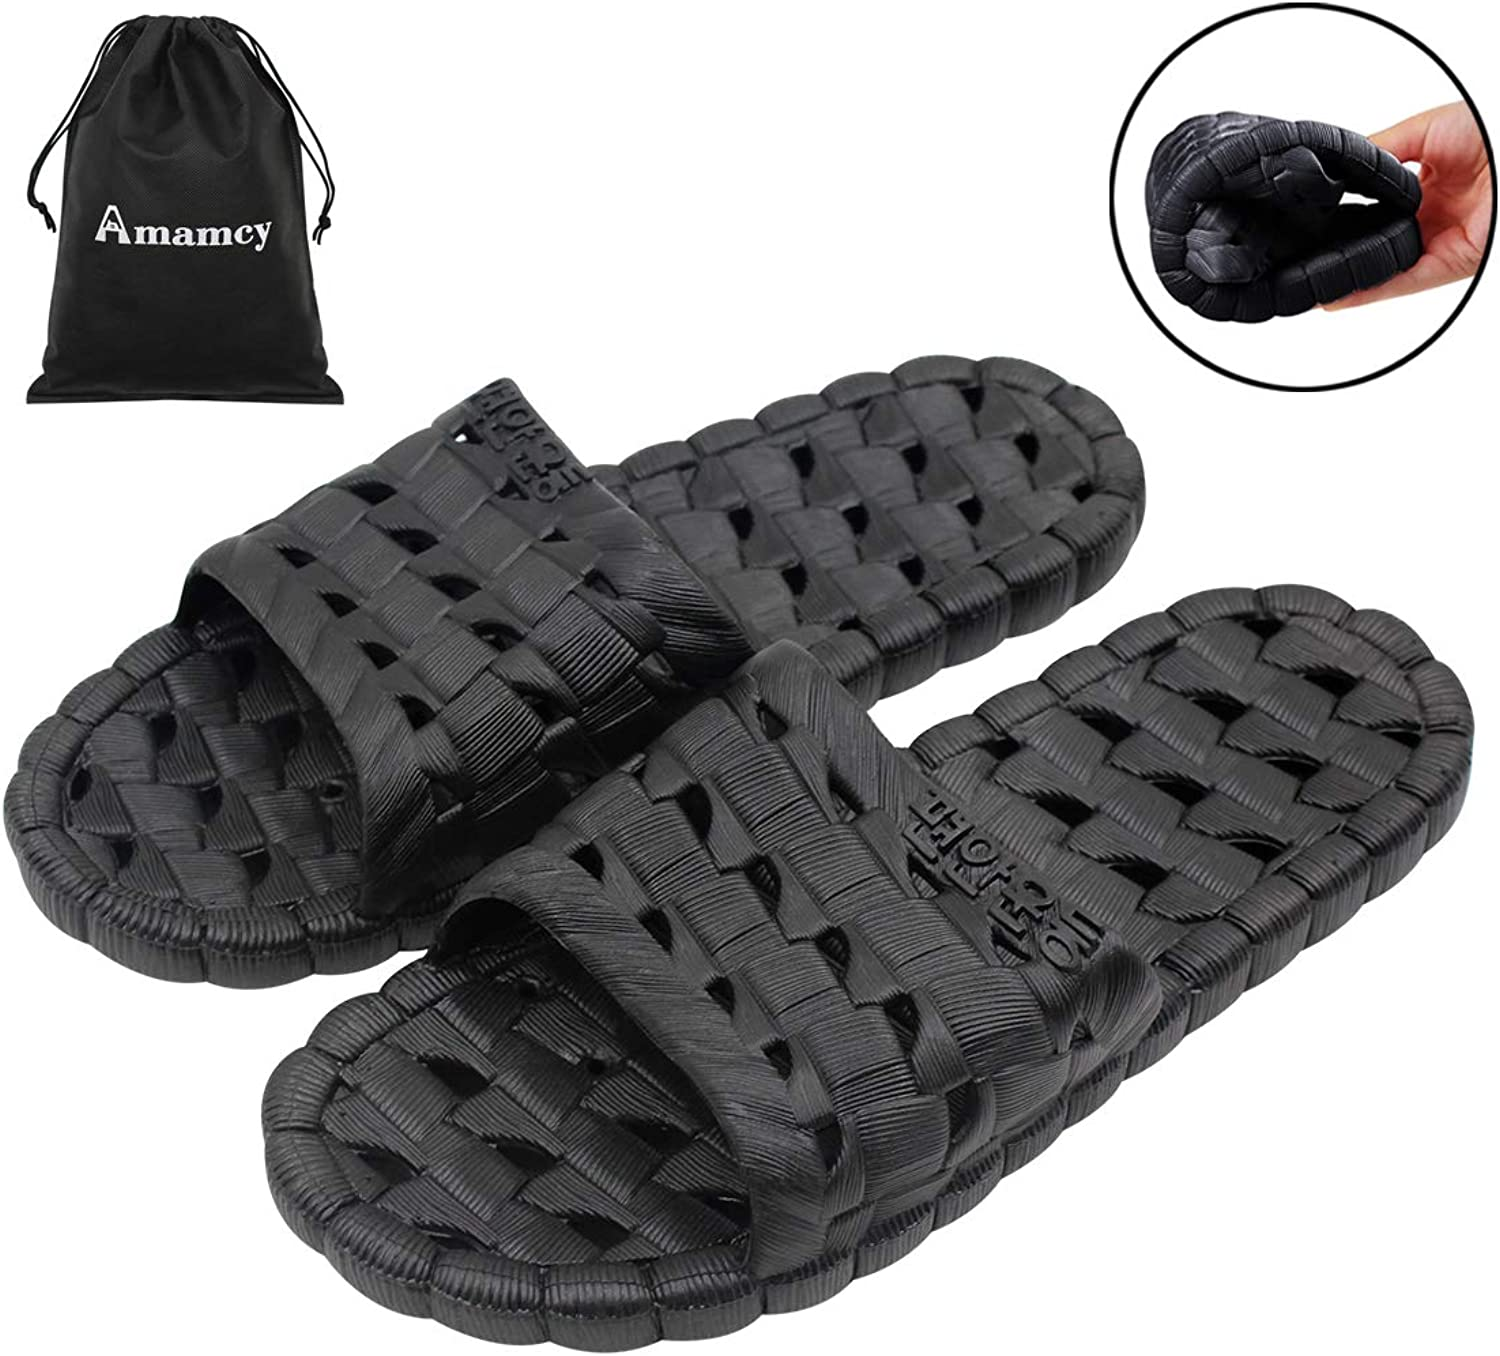 Amamcy Womens Mens Non-Slip Slippers Quick Drying Bathroom Shower Sandals Soft Sole Slide Water shoes